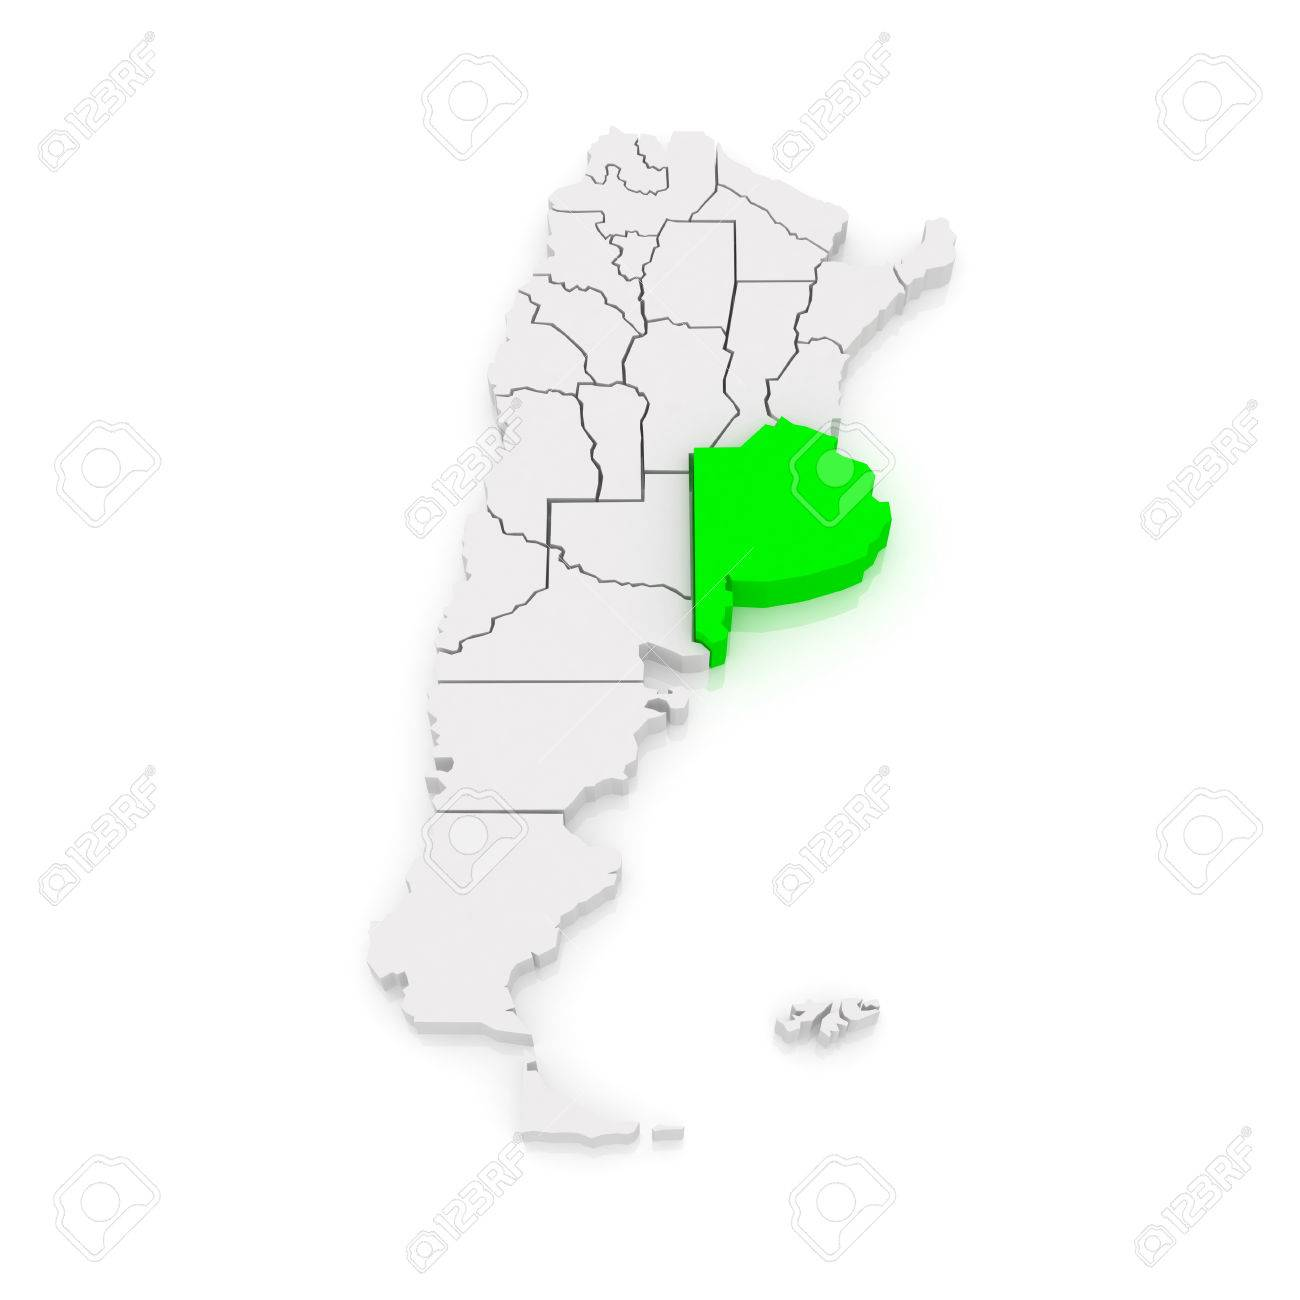 Map Of Buenos Aires Argentina D Stock Photo Picture And - Argentina 3d map